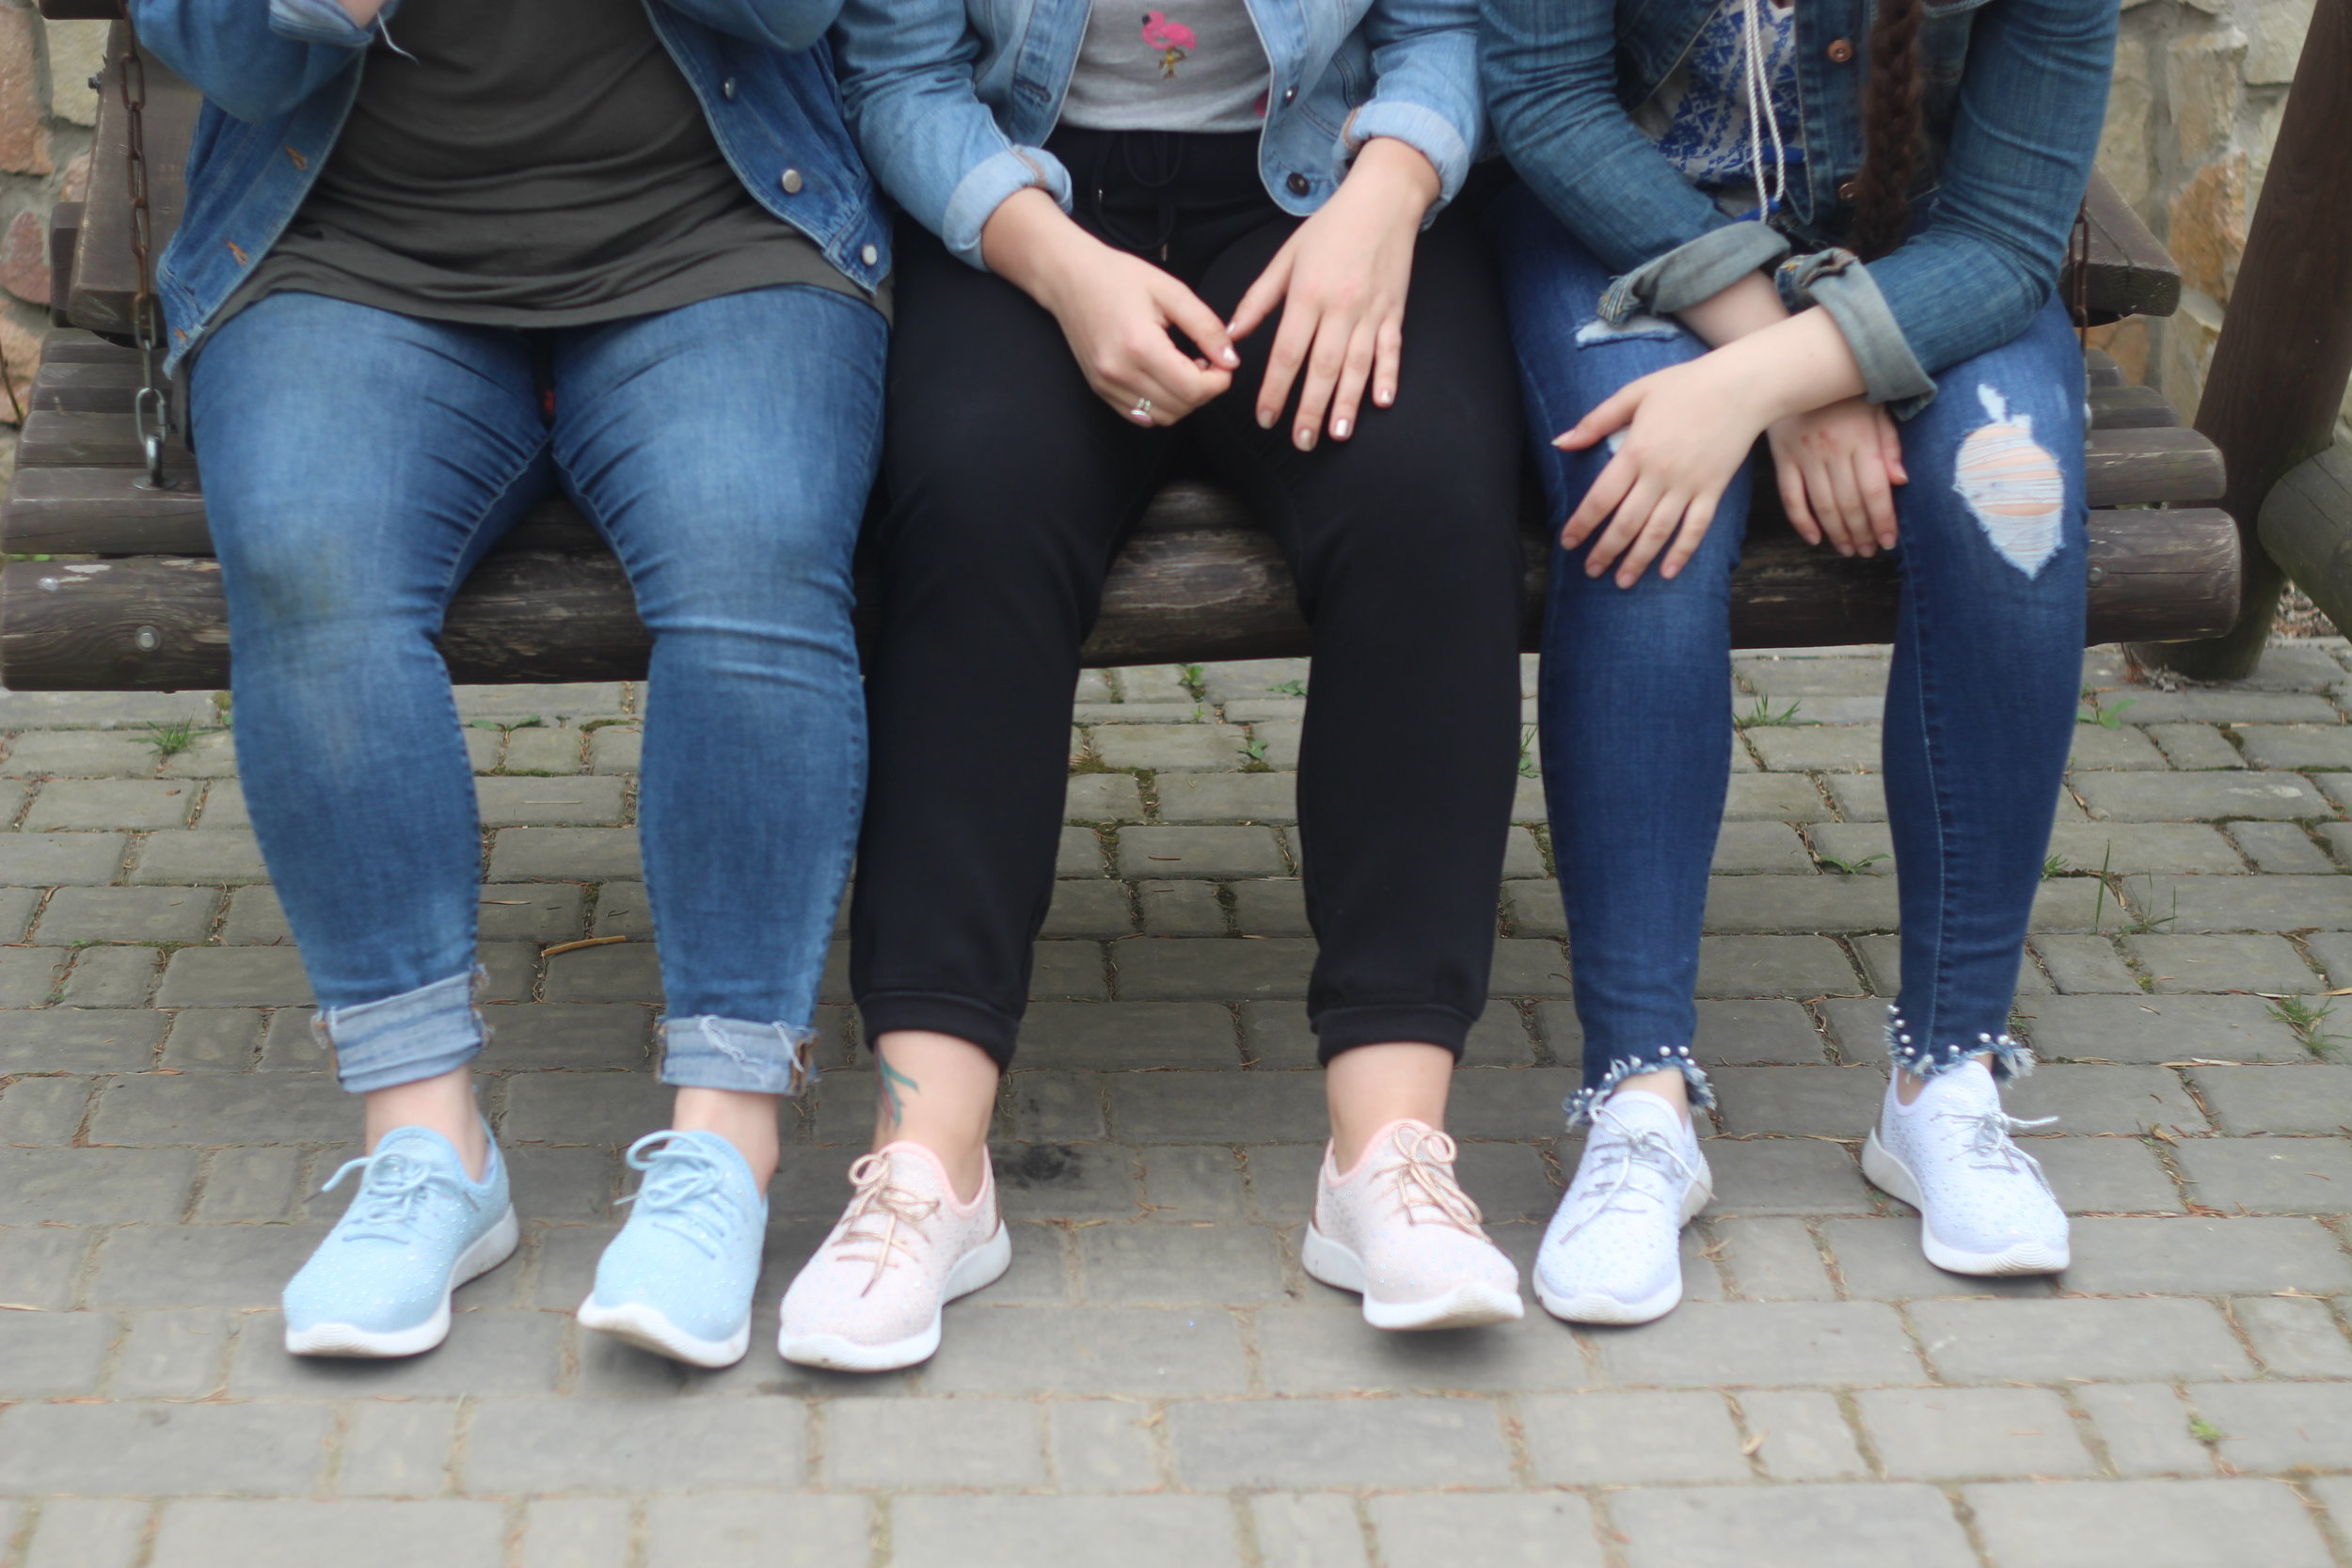 Do Hannah, Kaitlyn, and Natalya have matching sparkly market shoes? Of course they do.